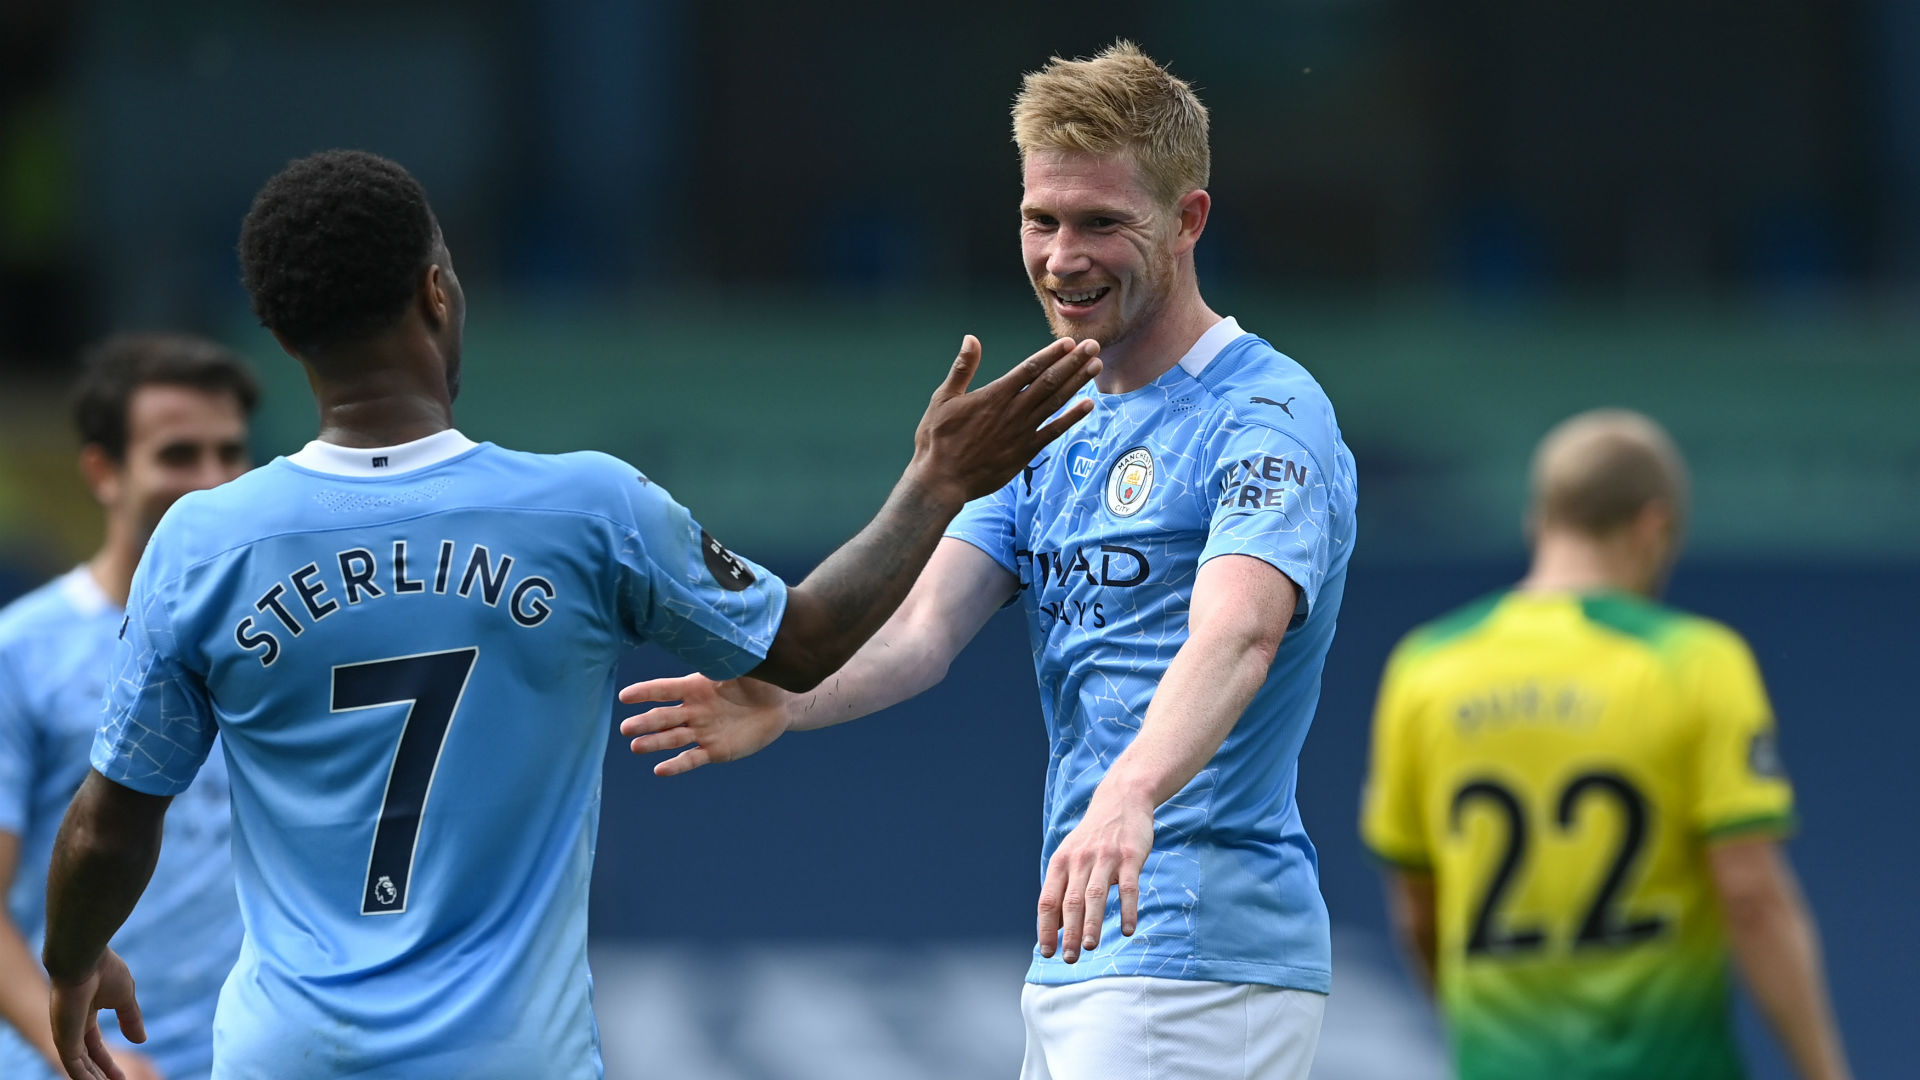 City need De Bruyne's goals as well as assists - Guardiola